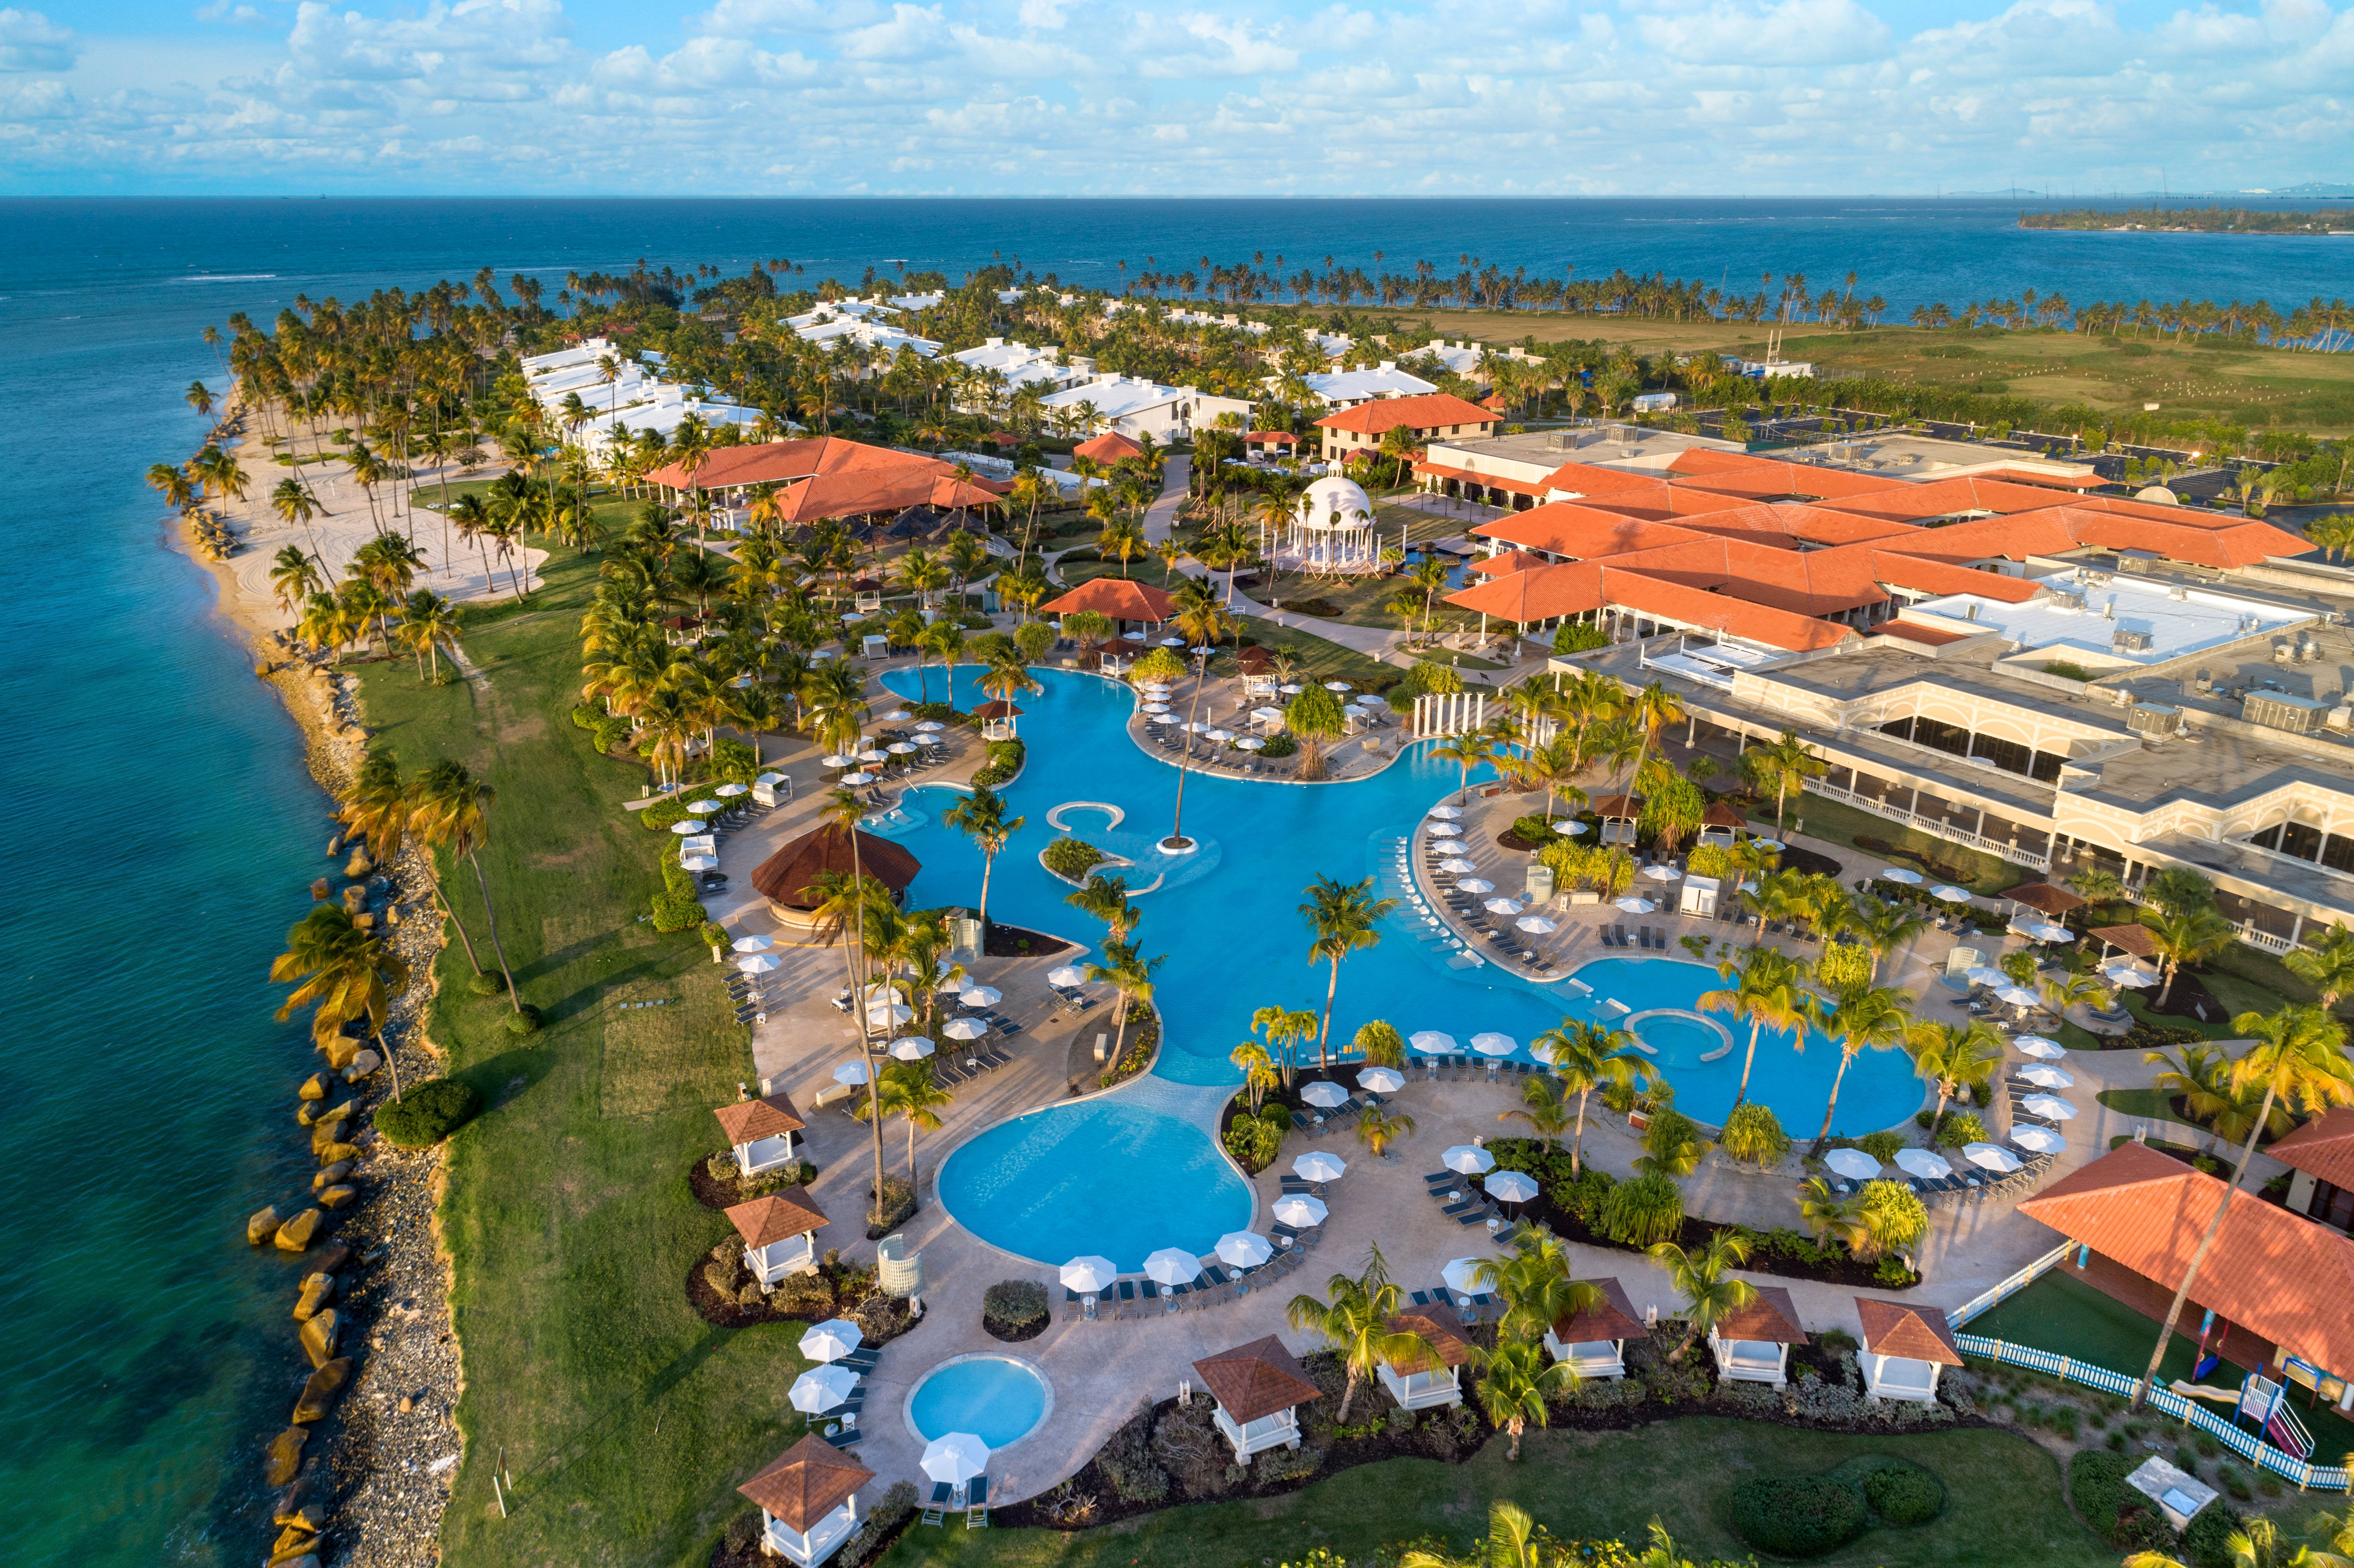 The new Hyatt Regency Grand Reserve Puerto Rico was known as the Gran Meliá Hotel, and later as The Resort at Coco Beach.